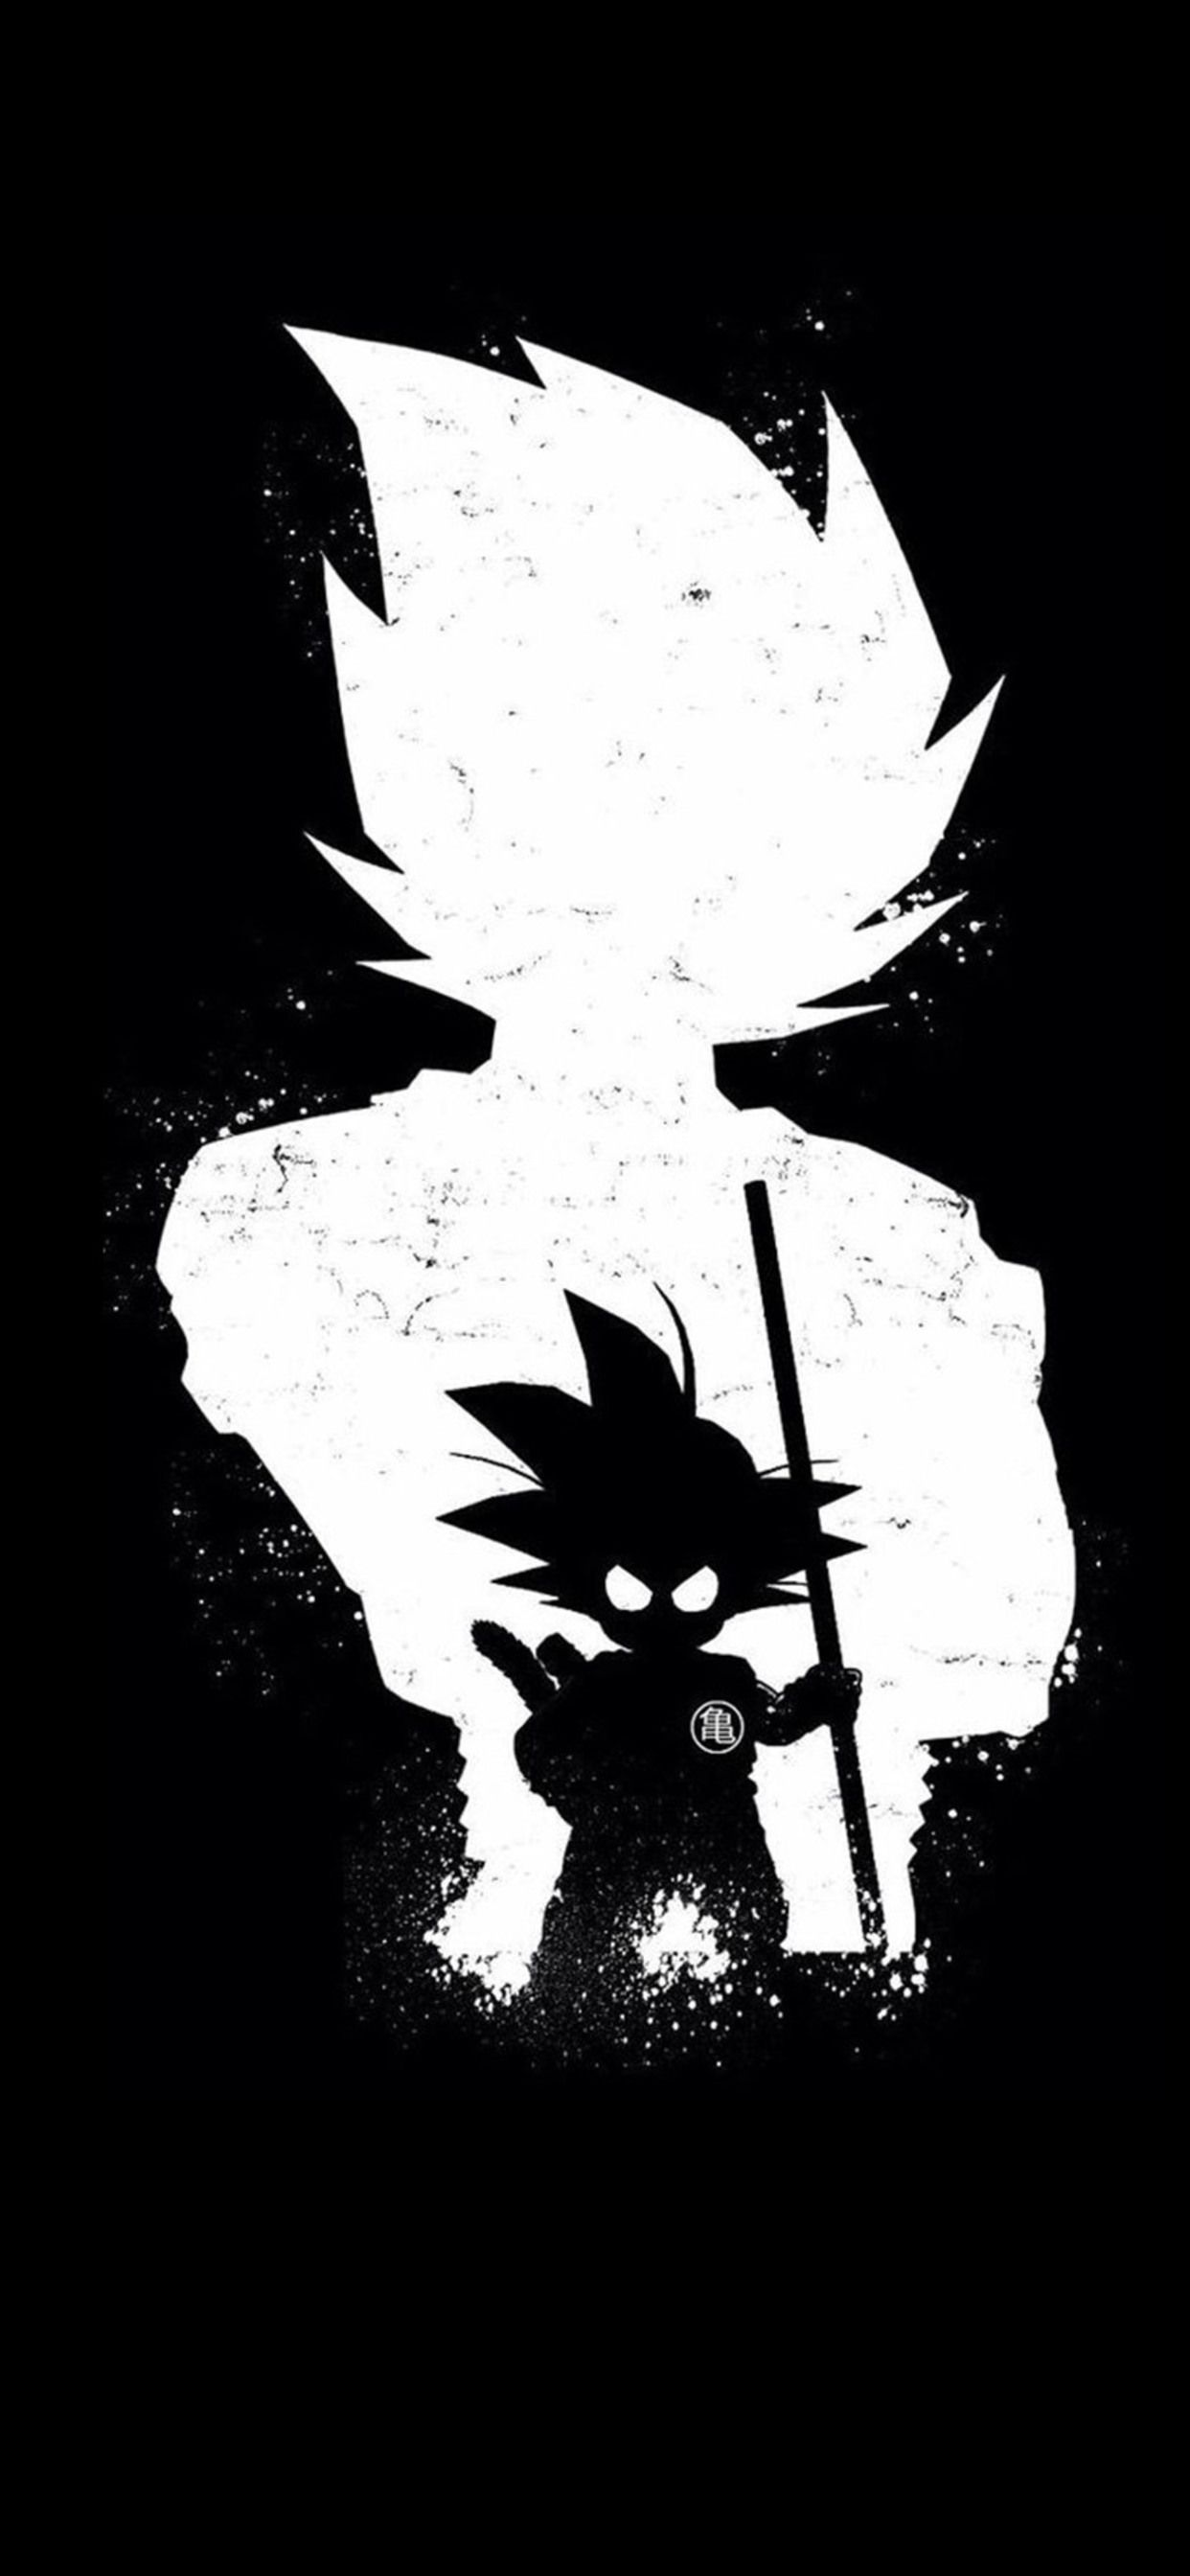 Naruto Wallpaper For Iphone Xs Max Iphone Xs Max Black